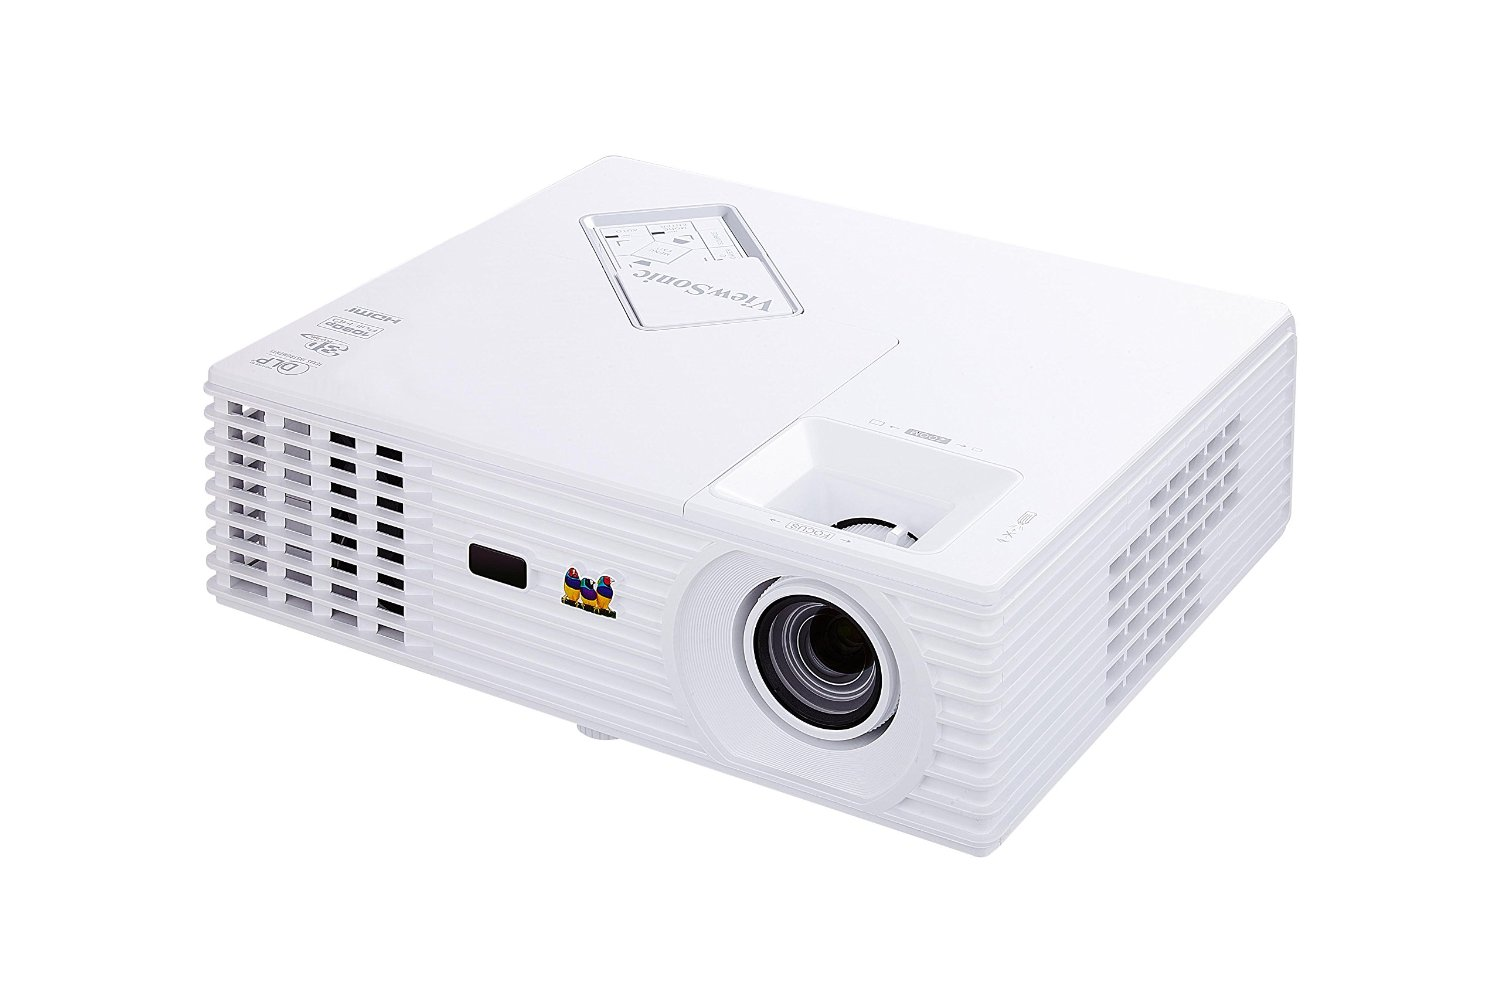 Aditiaudiovisuals Viewsonic Pjd7822hdl Home Entertainment Projector Epson Eh Tw570 Theatre Portable Projectors And Neither Are Serious Theater The Older 7820hd Brought 1080p Resolution Into Peoples Homes For Under 1000 When